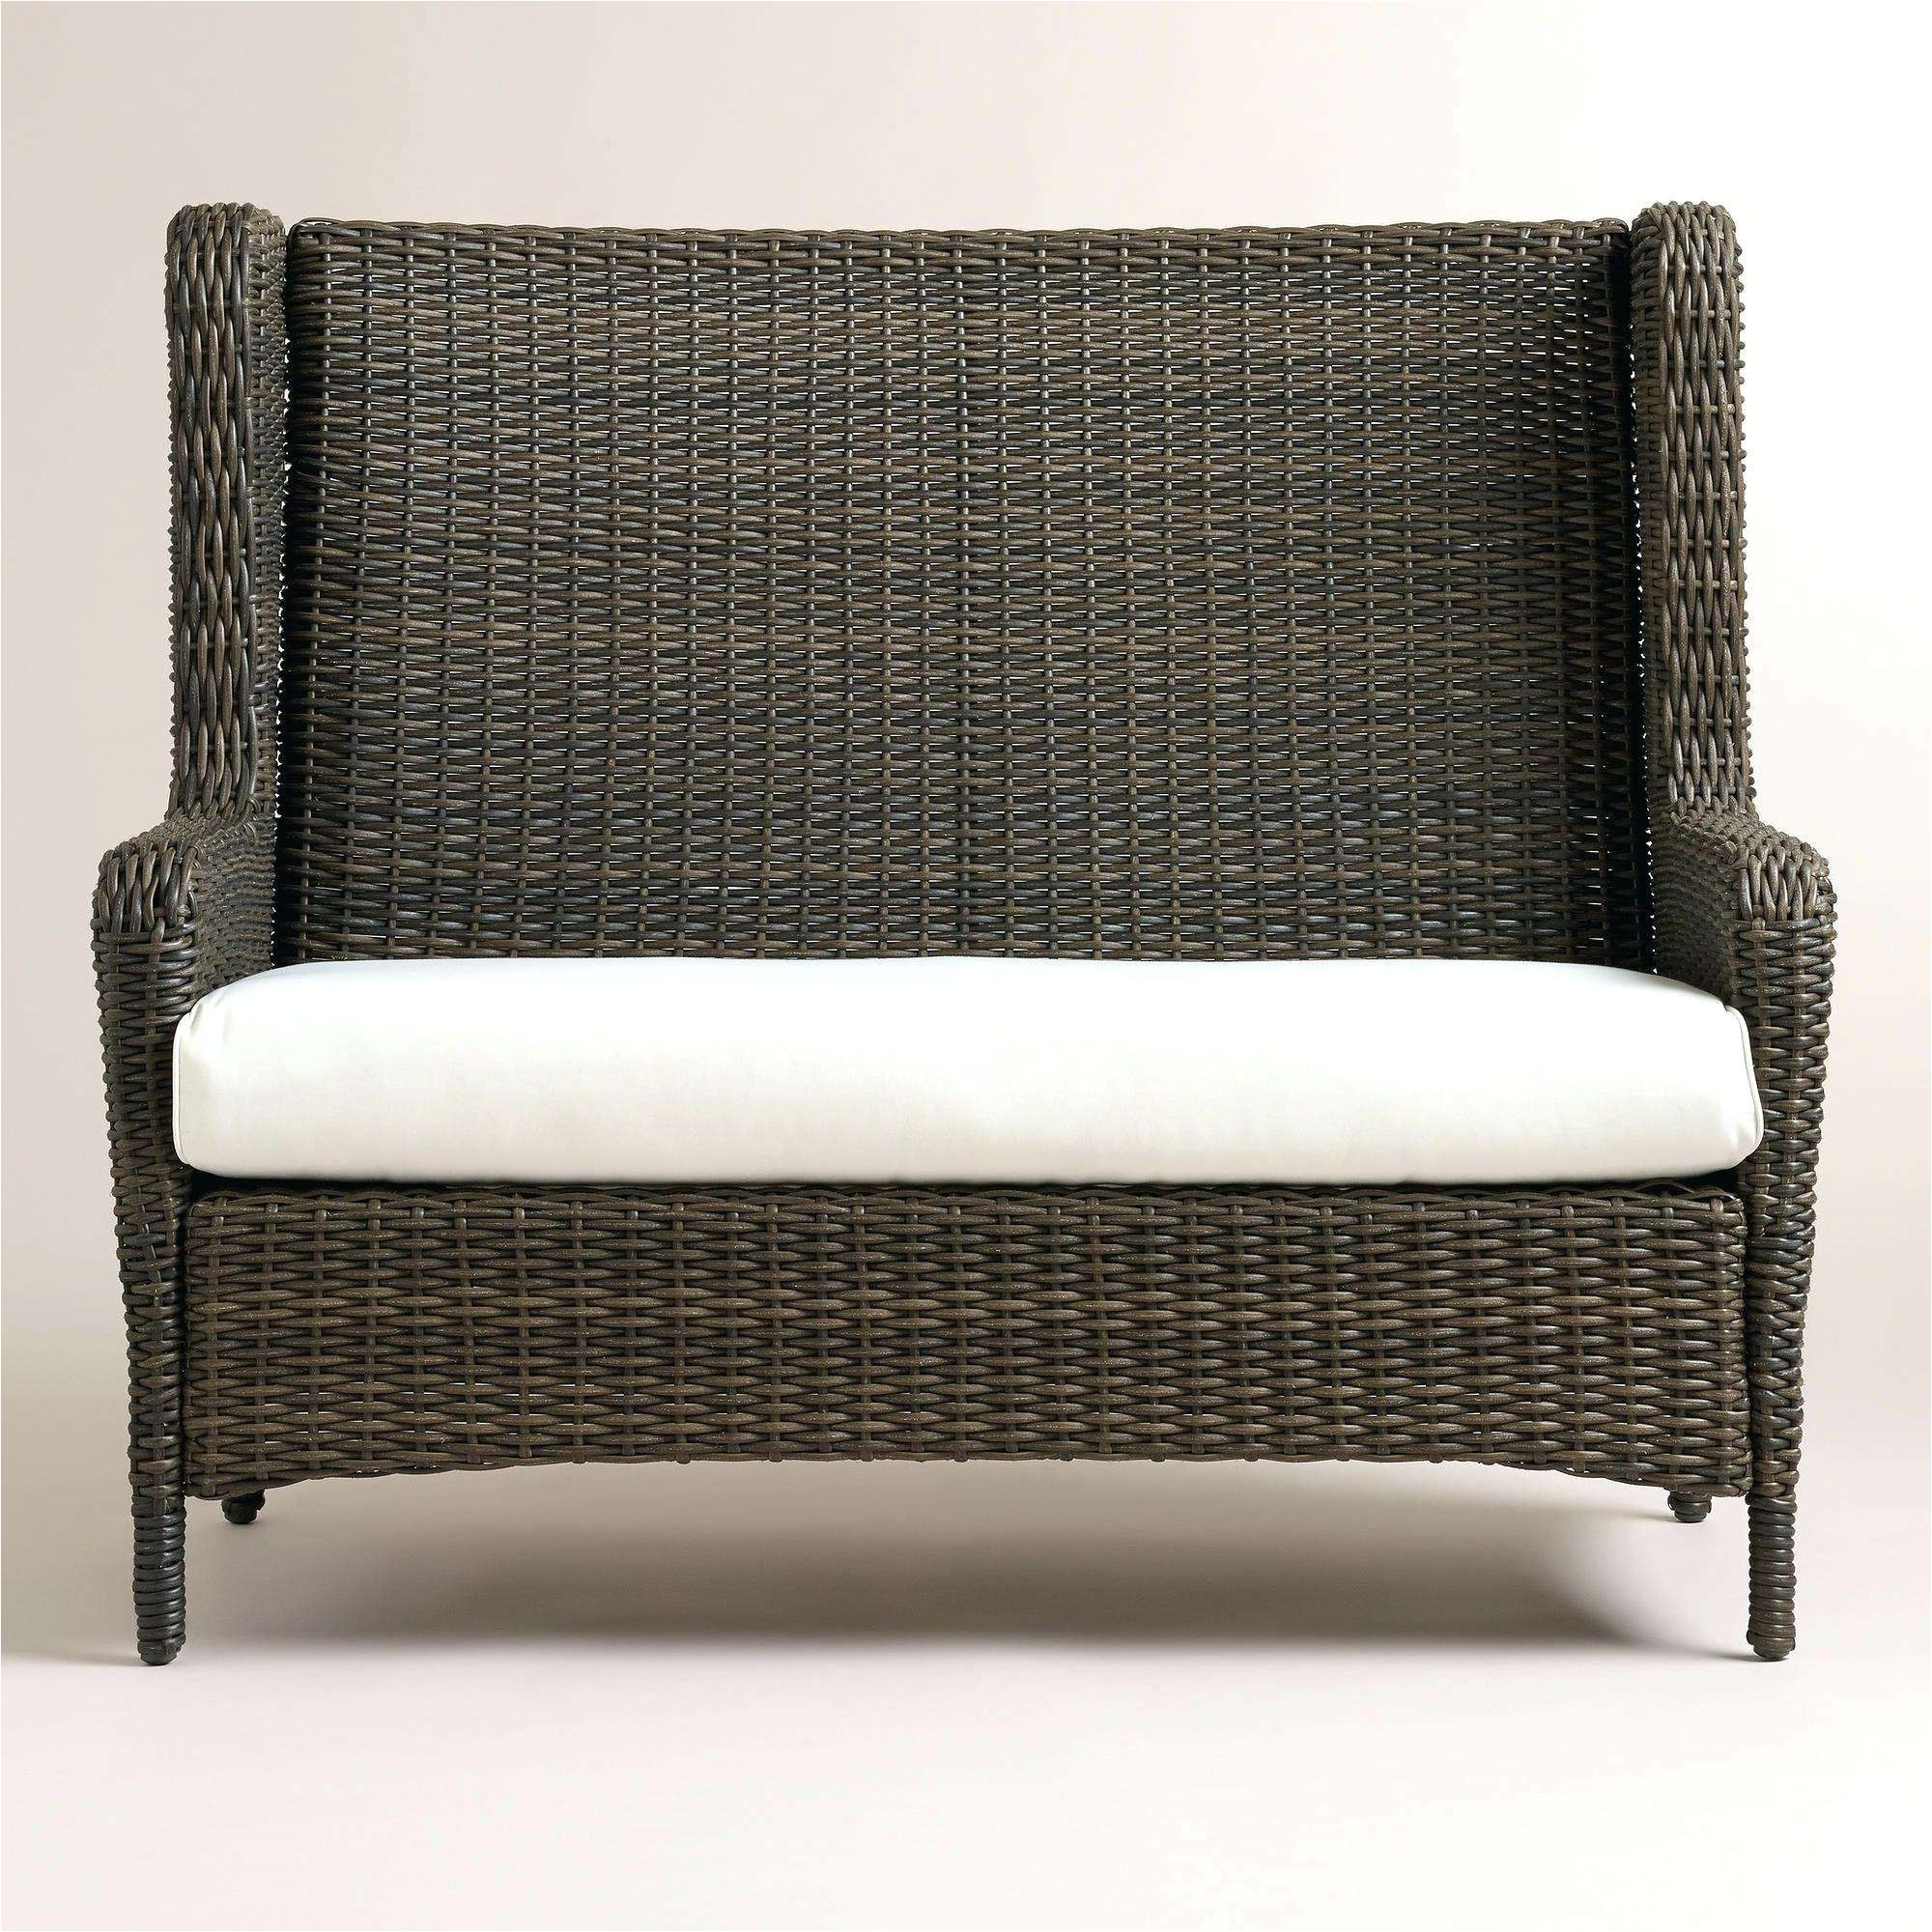 wicker outdoor sofa 0d patio chairs sale replacement cushions ideas of outdoor lounge chair cushions